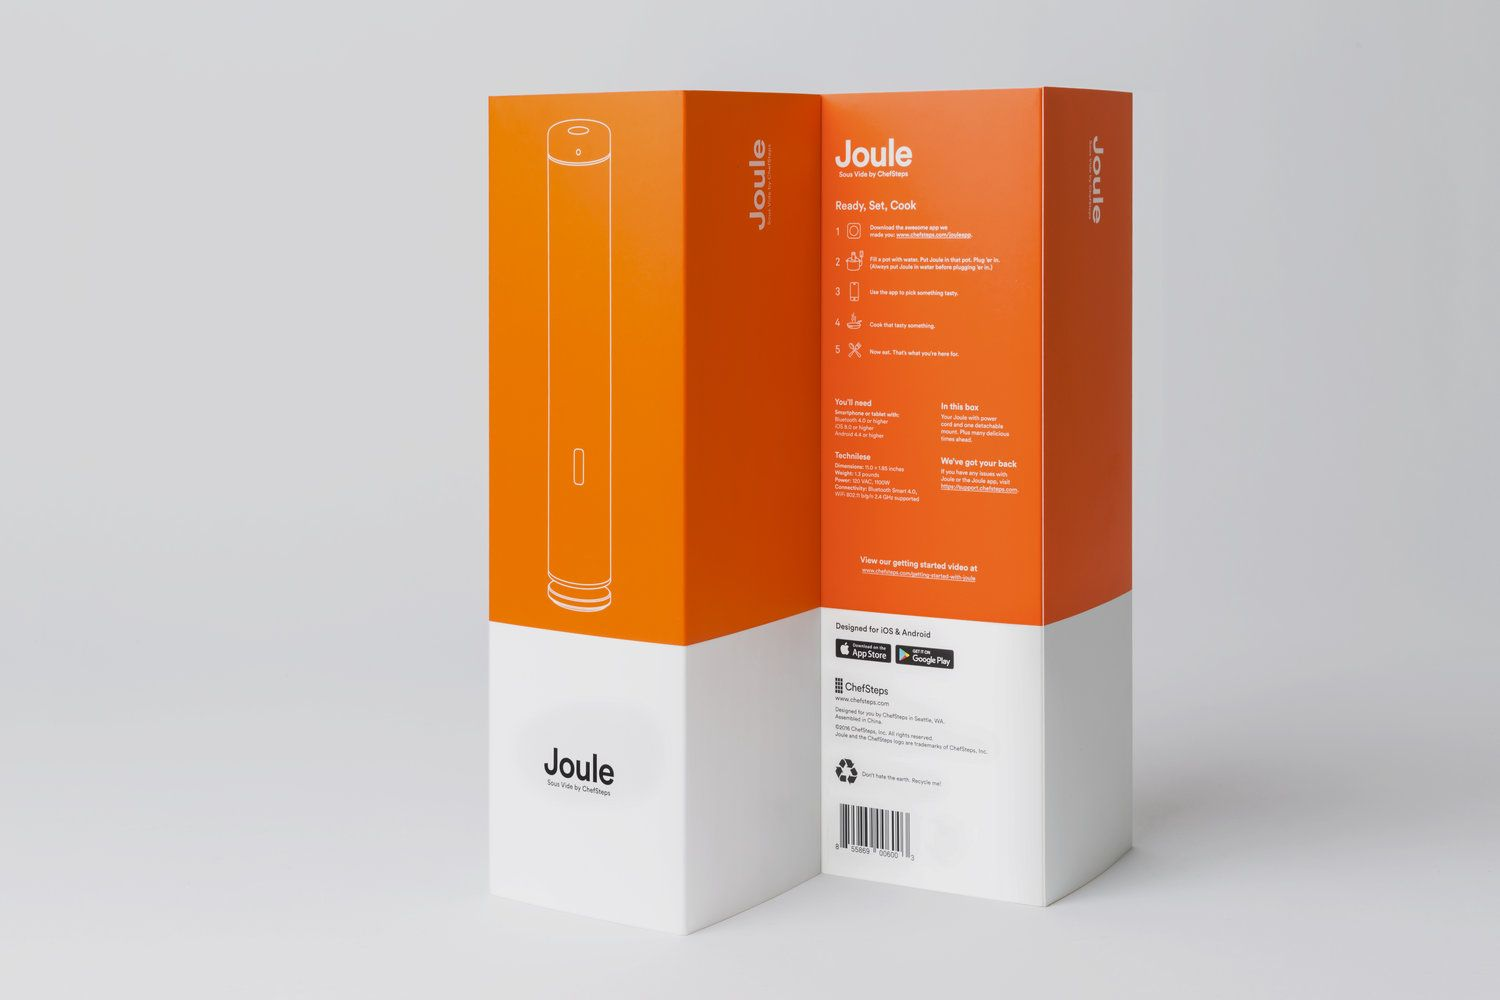 The Dieline Awards 2017: Joule: Sous Vide by ChefSteps — The Dieline | Packaging & Branding Design & Innovation News